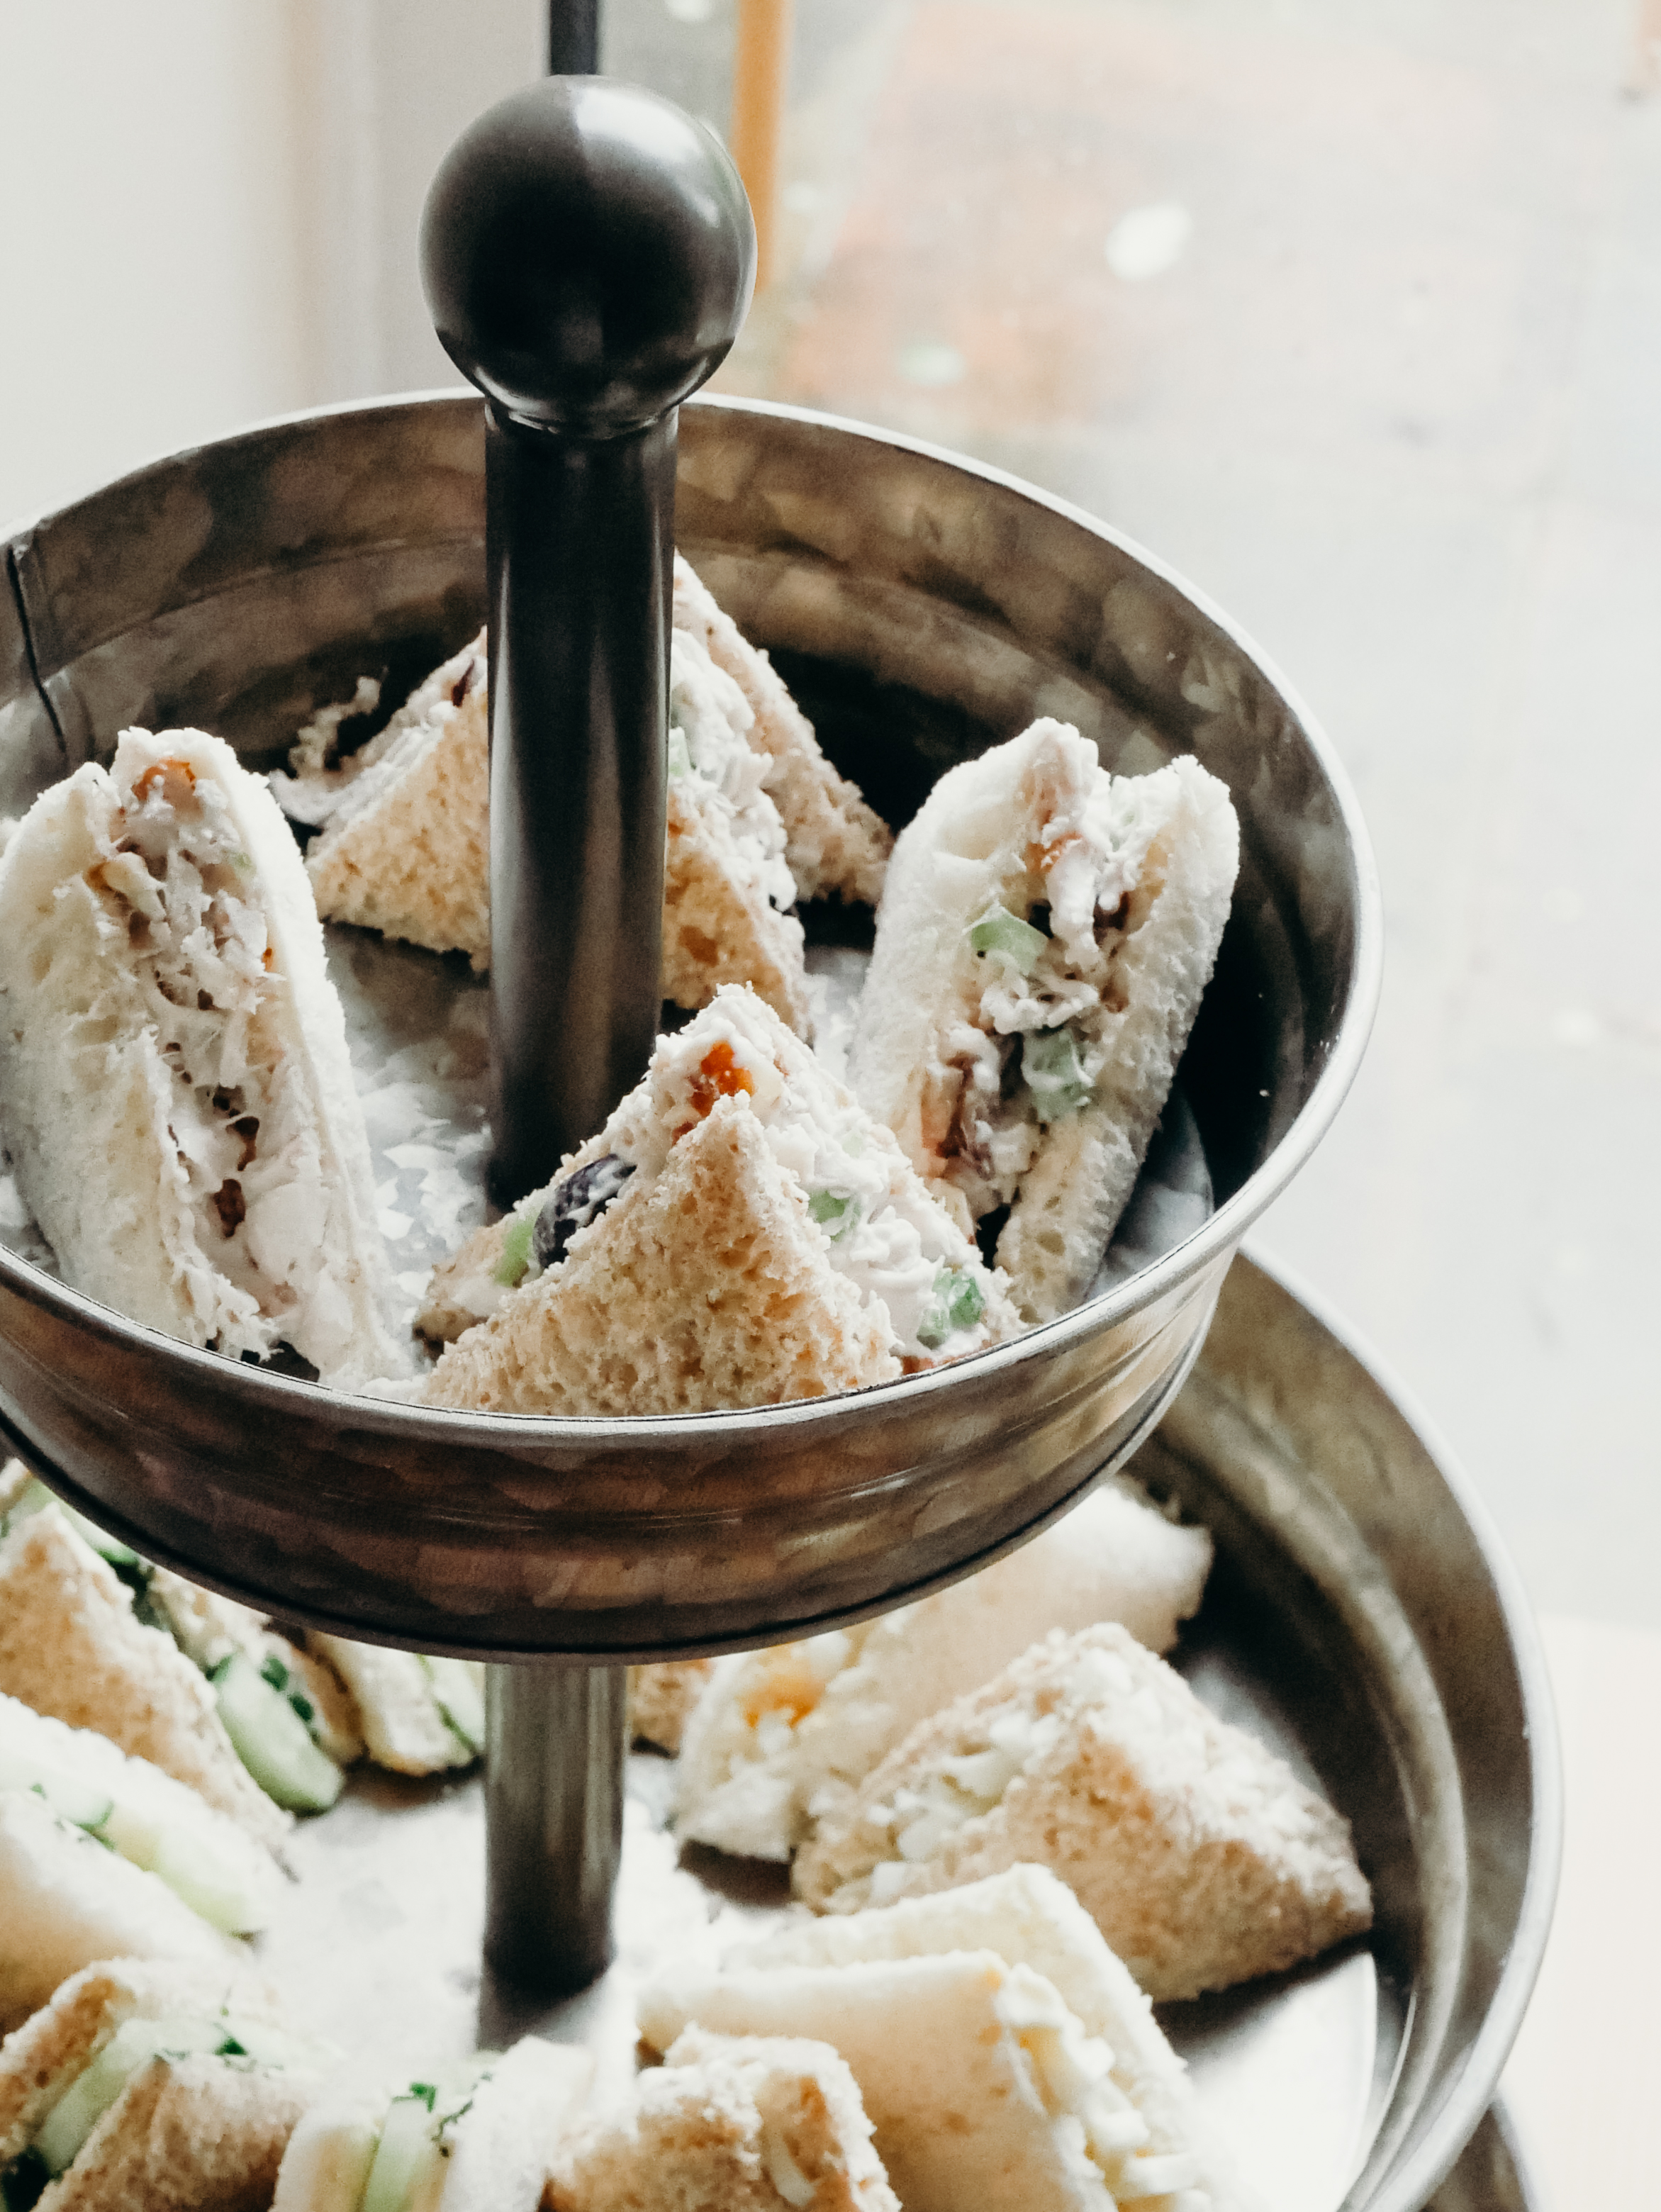 CHICKEN SALAD SANDWICHES - Taylor made the chicken salad with grapes and walnuts. (The original recipe calls for pecans.) We made all of the sandwiches on both wheat and white bread. I recommend getting as close to rectangular loaves as possible, otherwise you're cutting off a lot of top crust where it's uneven. Tea sandwiches always have the crust removed and are cut into thirds or fourths. I cut an X into the sandwiches, which made for two different sized triangles. I wish I had just cut them all into three strips (from top to bottom).